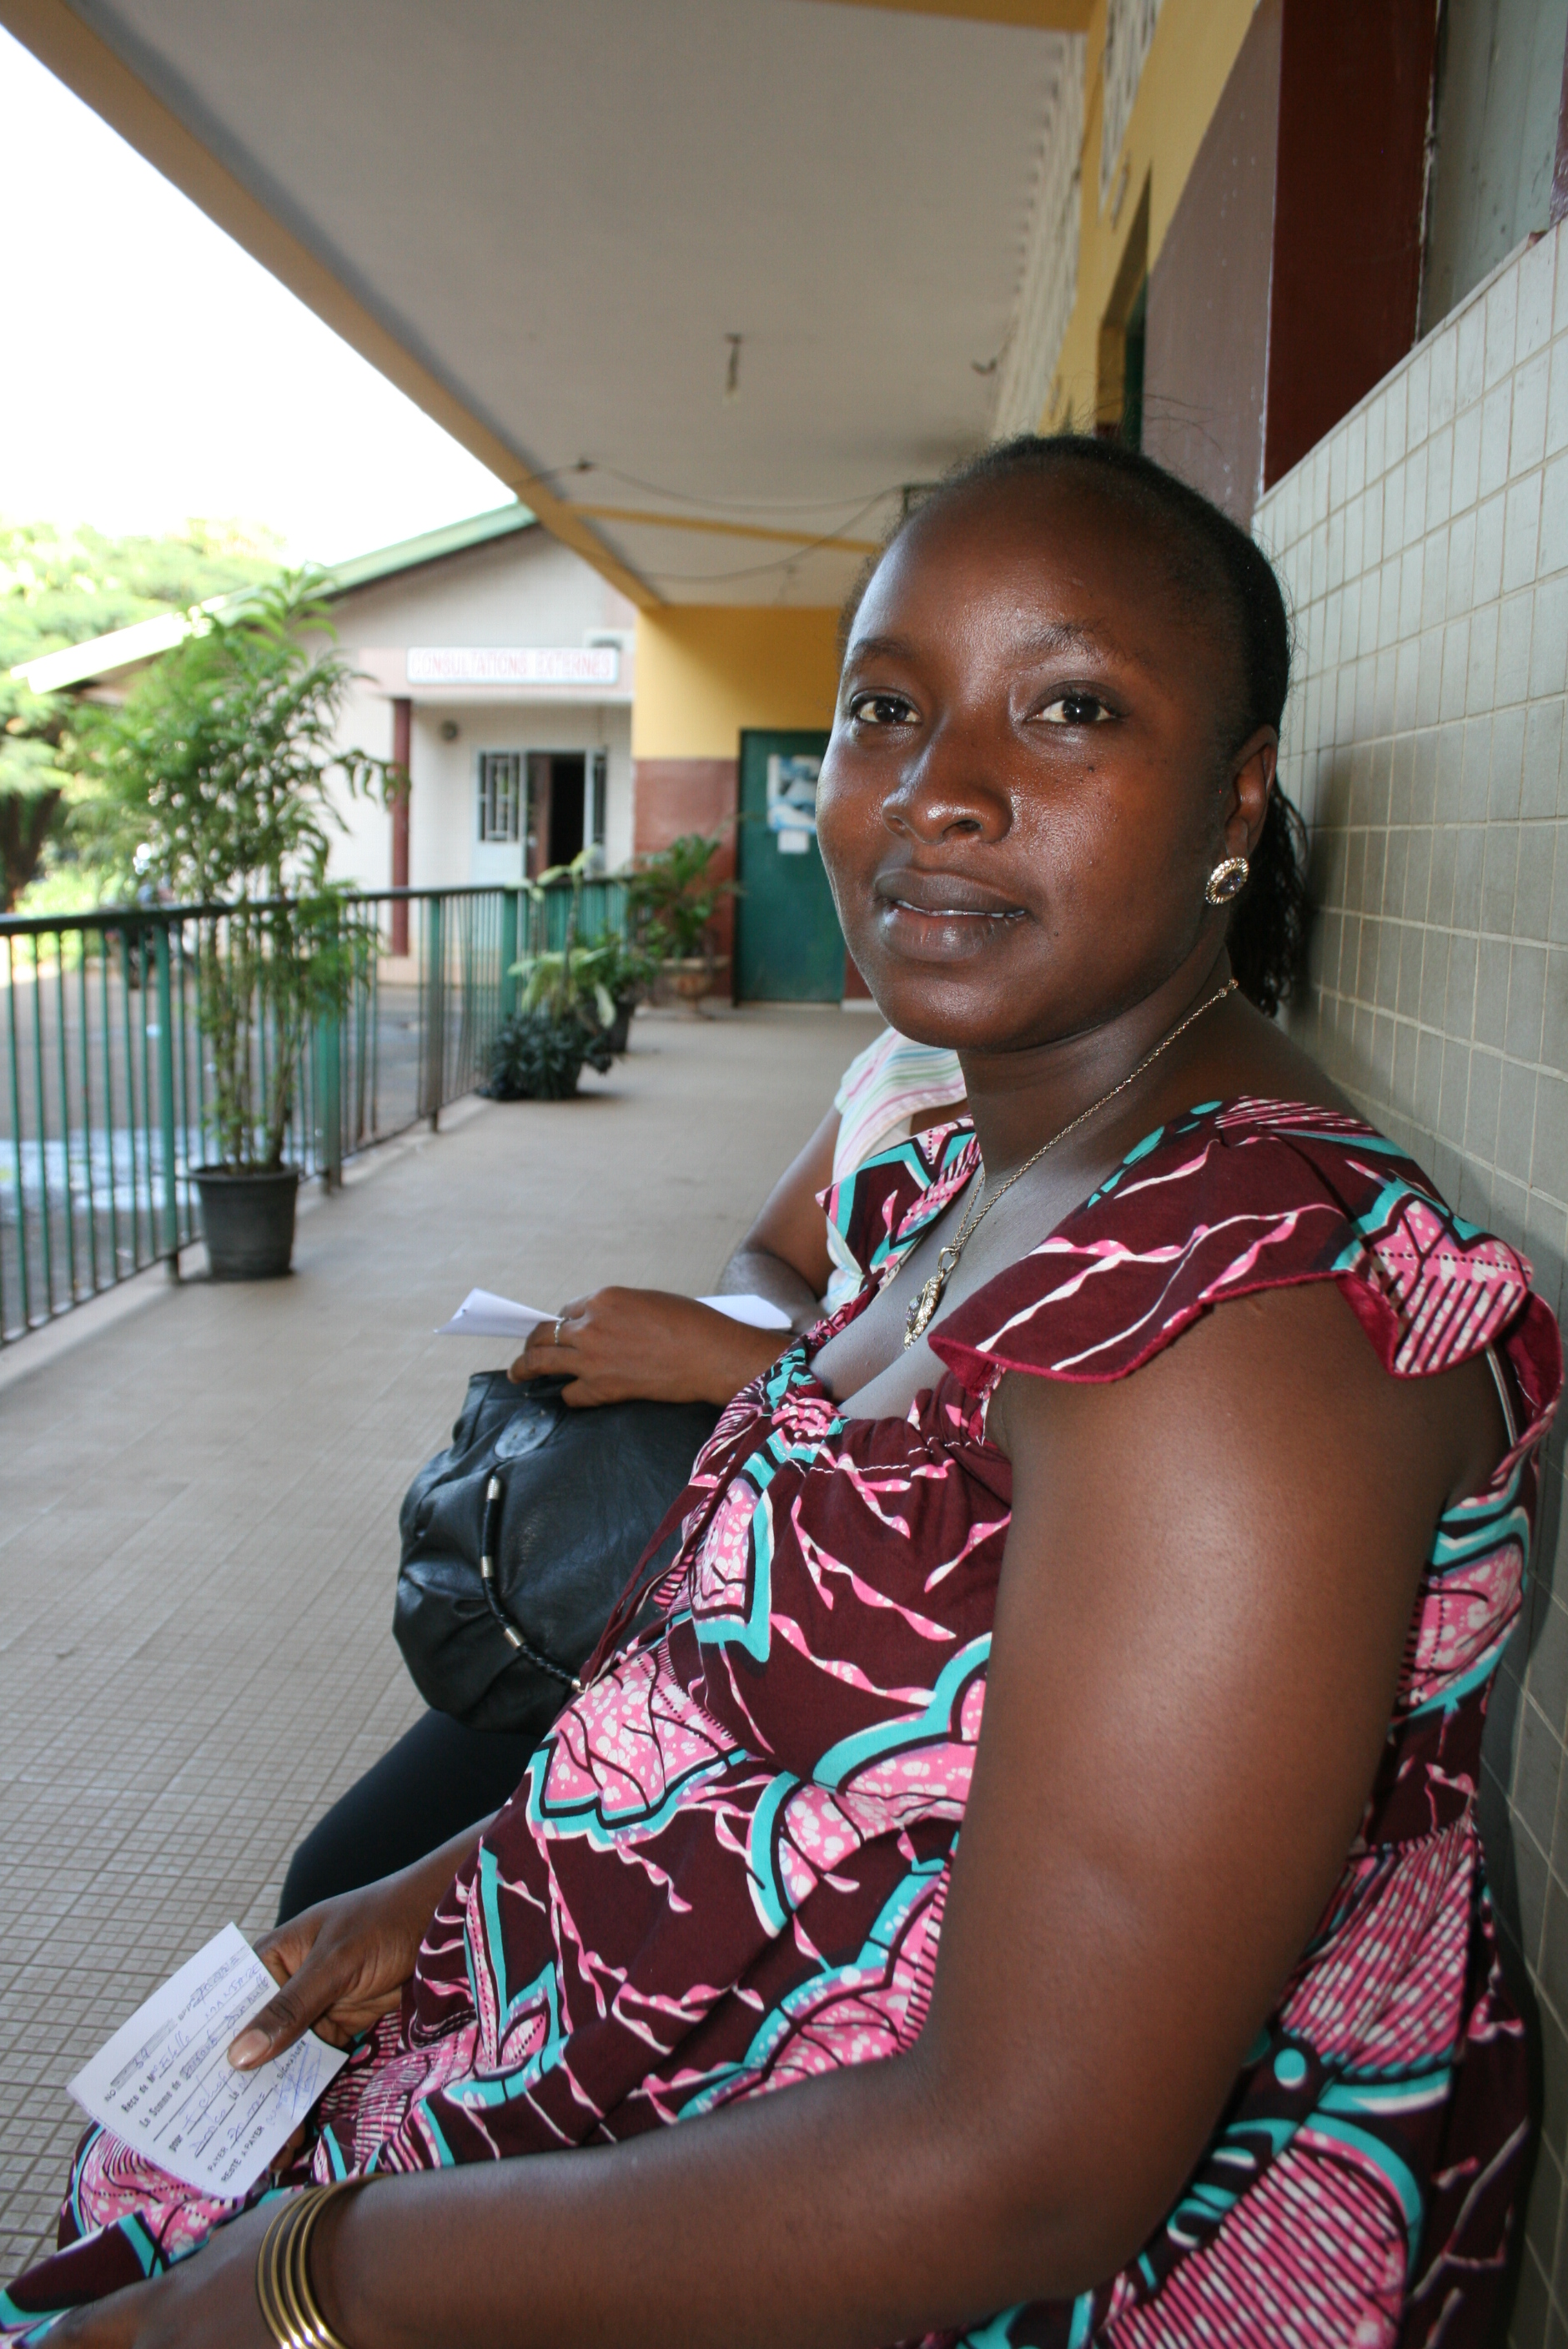 Ifonou Estelle Montserey is eight-months pregnant. She told IRIN the fees she pays for scans and ante-natal consultations at Donka hospital change each month